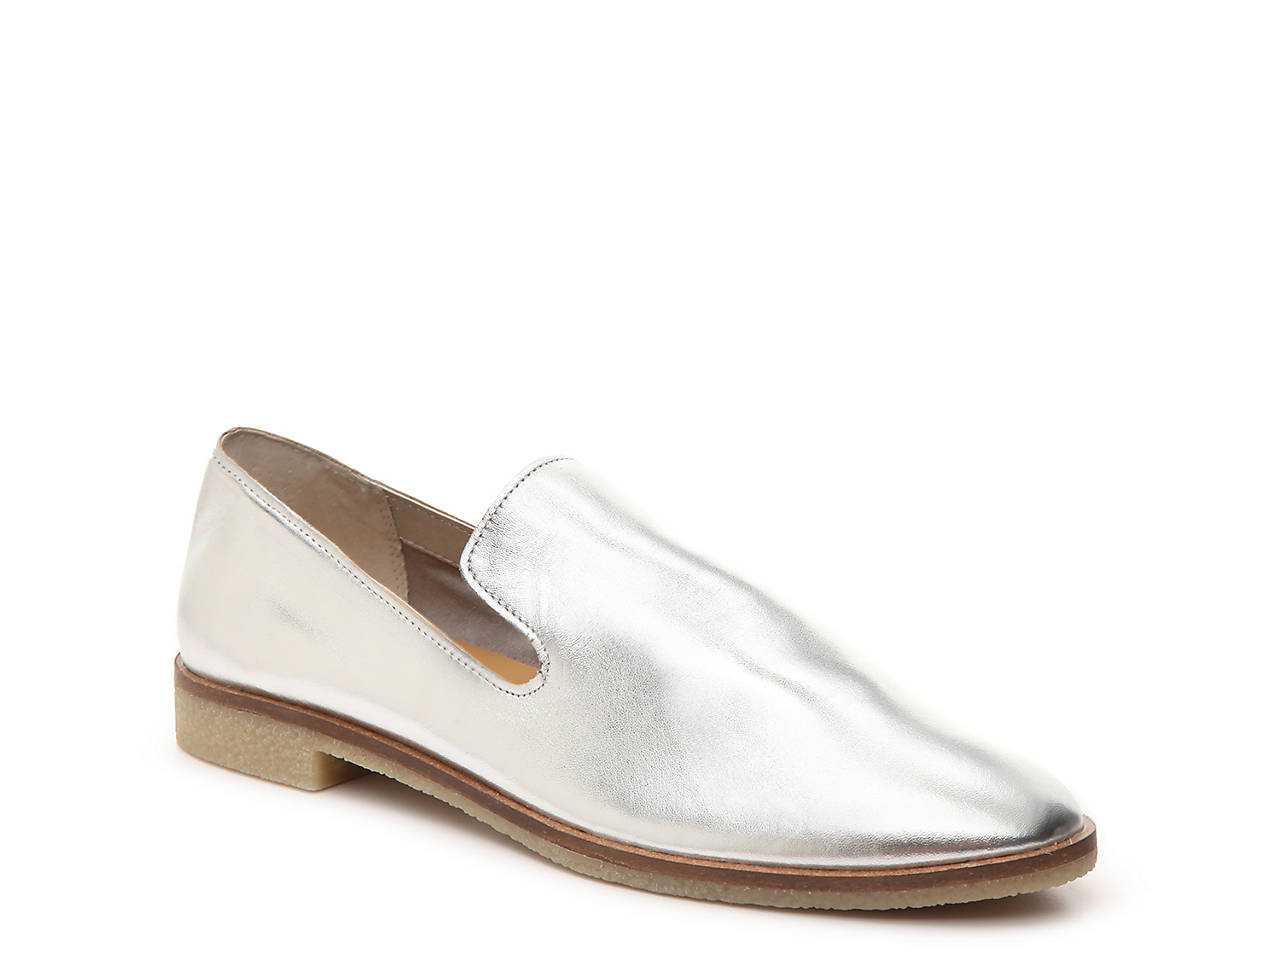 d2eb0753580 Dolce Vita Carla Loafer Women s Shoes